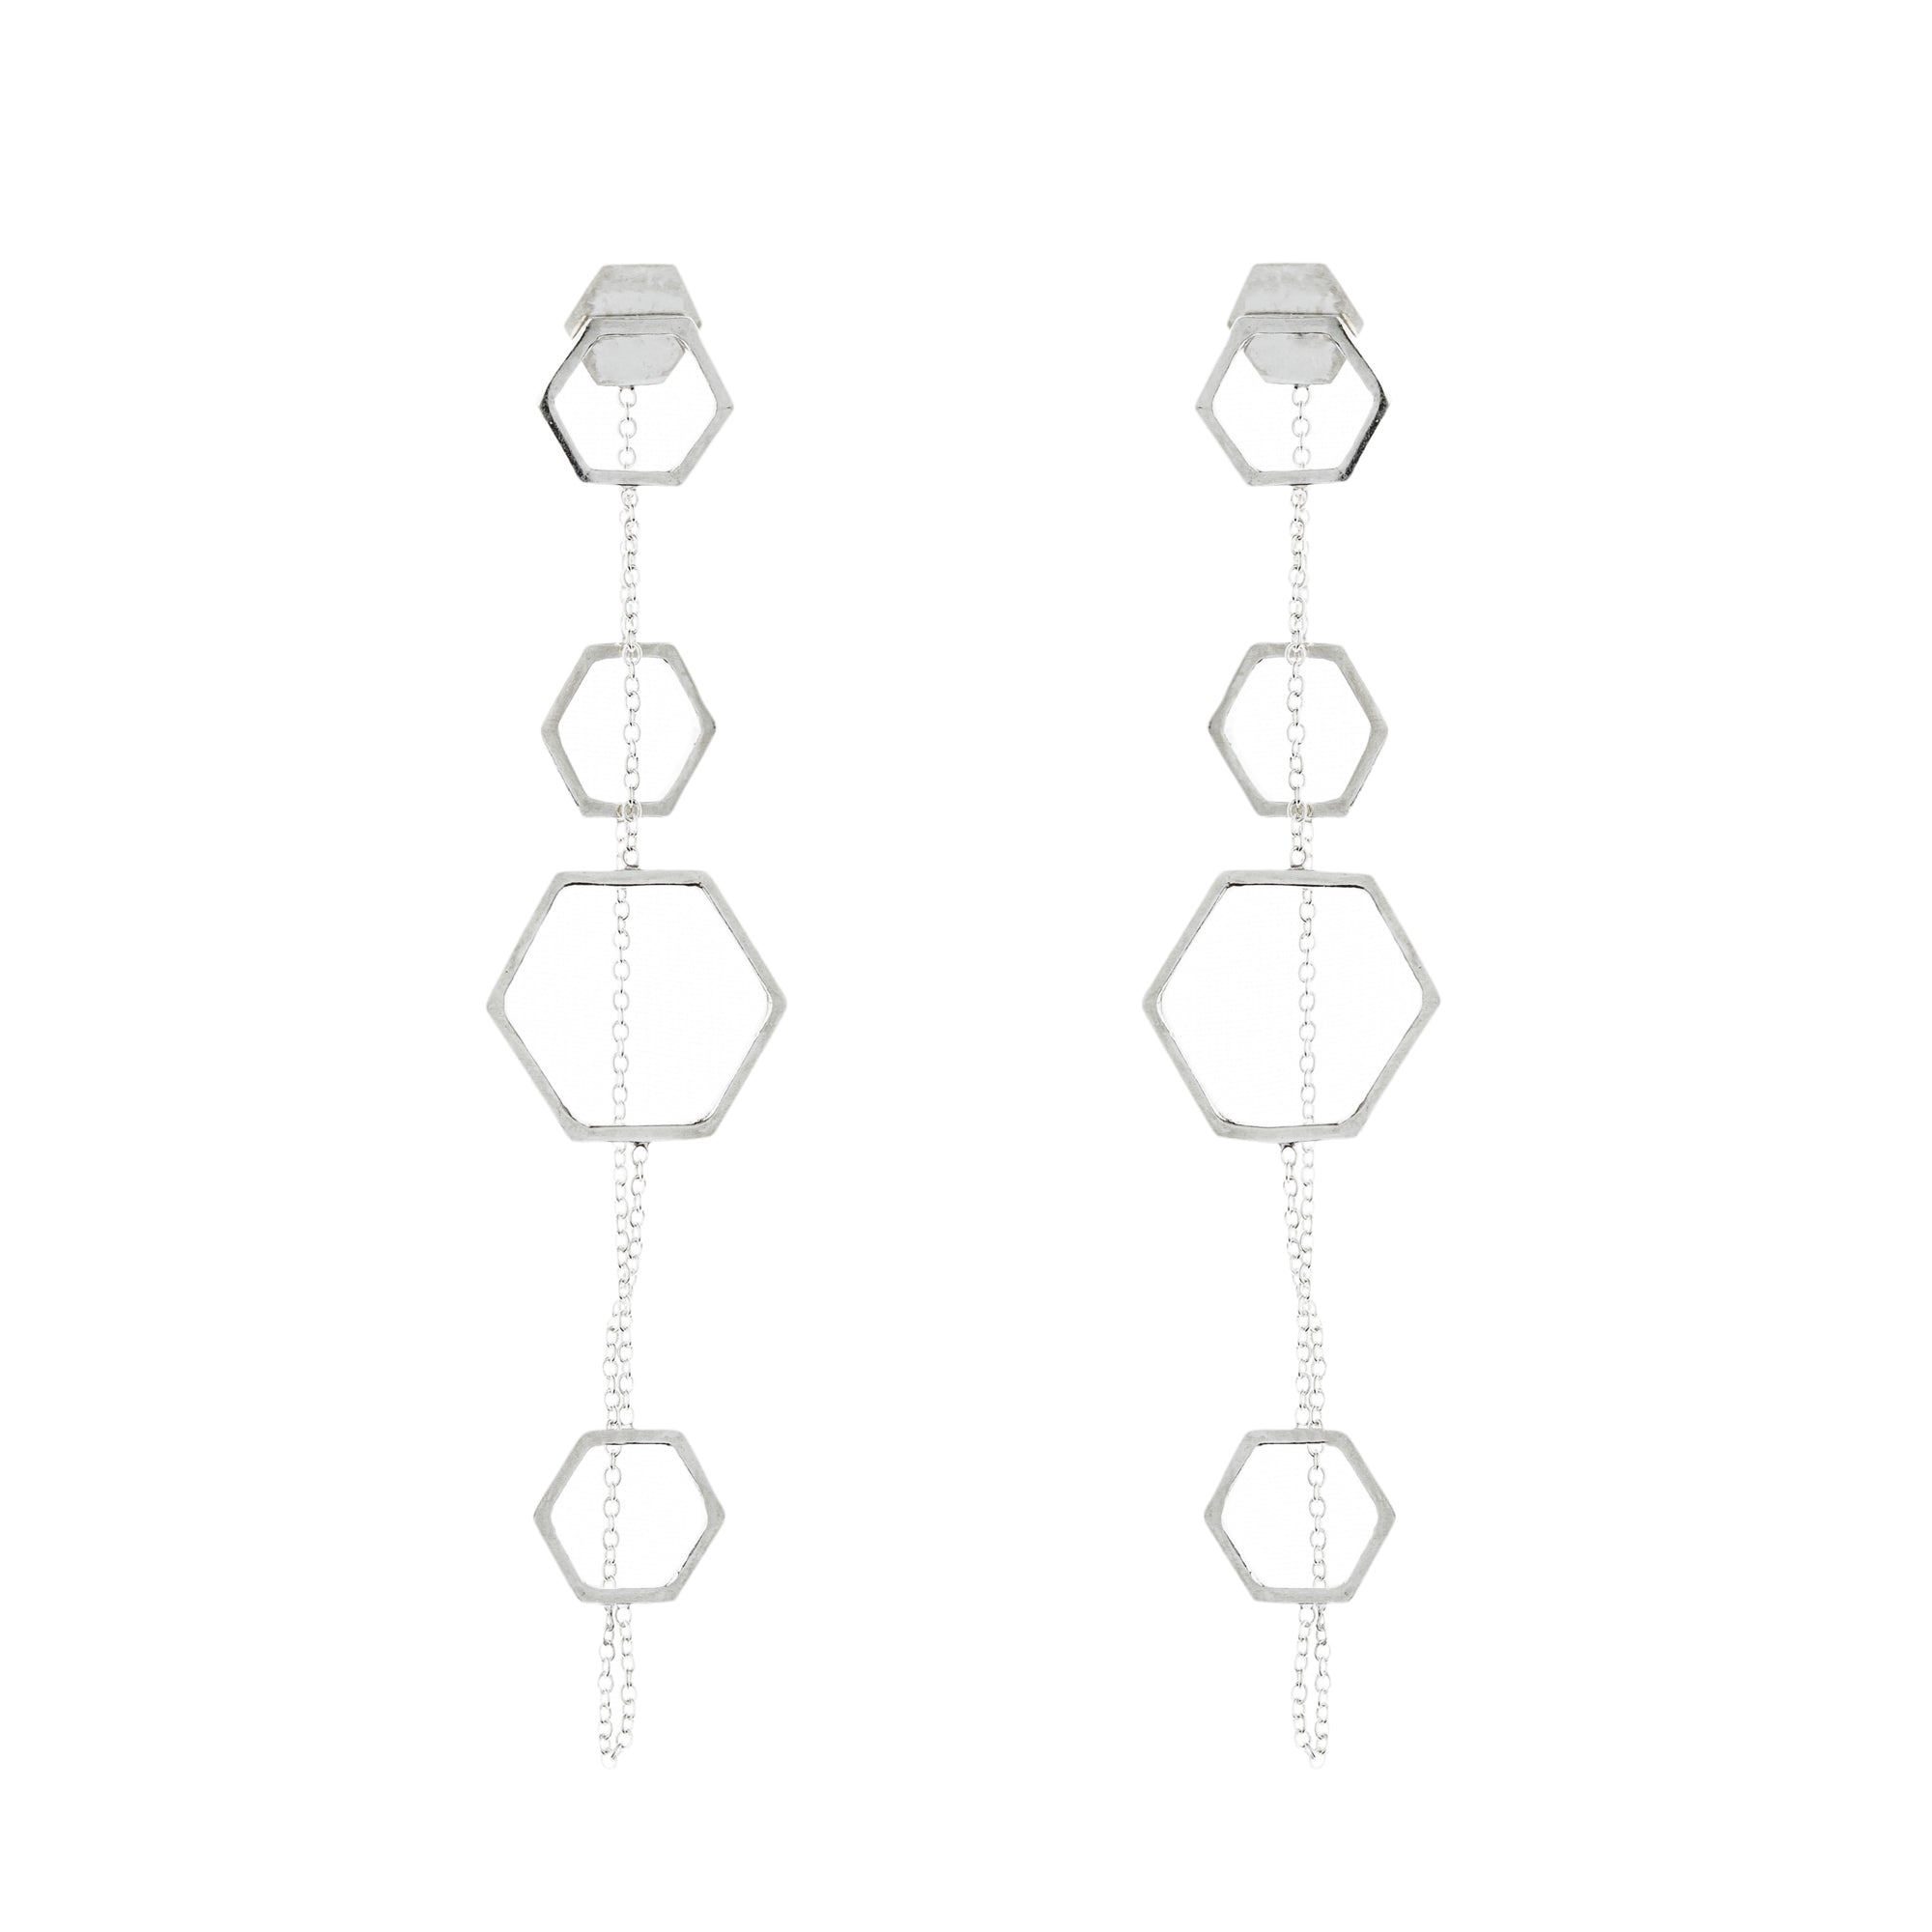 Aurore Havenne belgian designer 1000&1 long earrings silver minimalist jewellery bijou fin